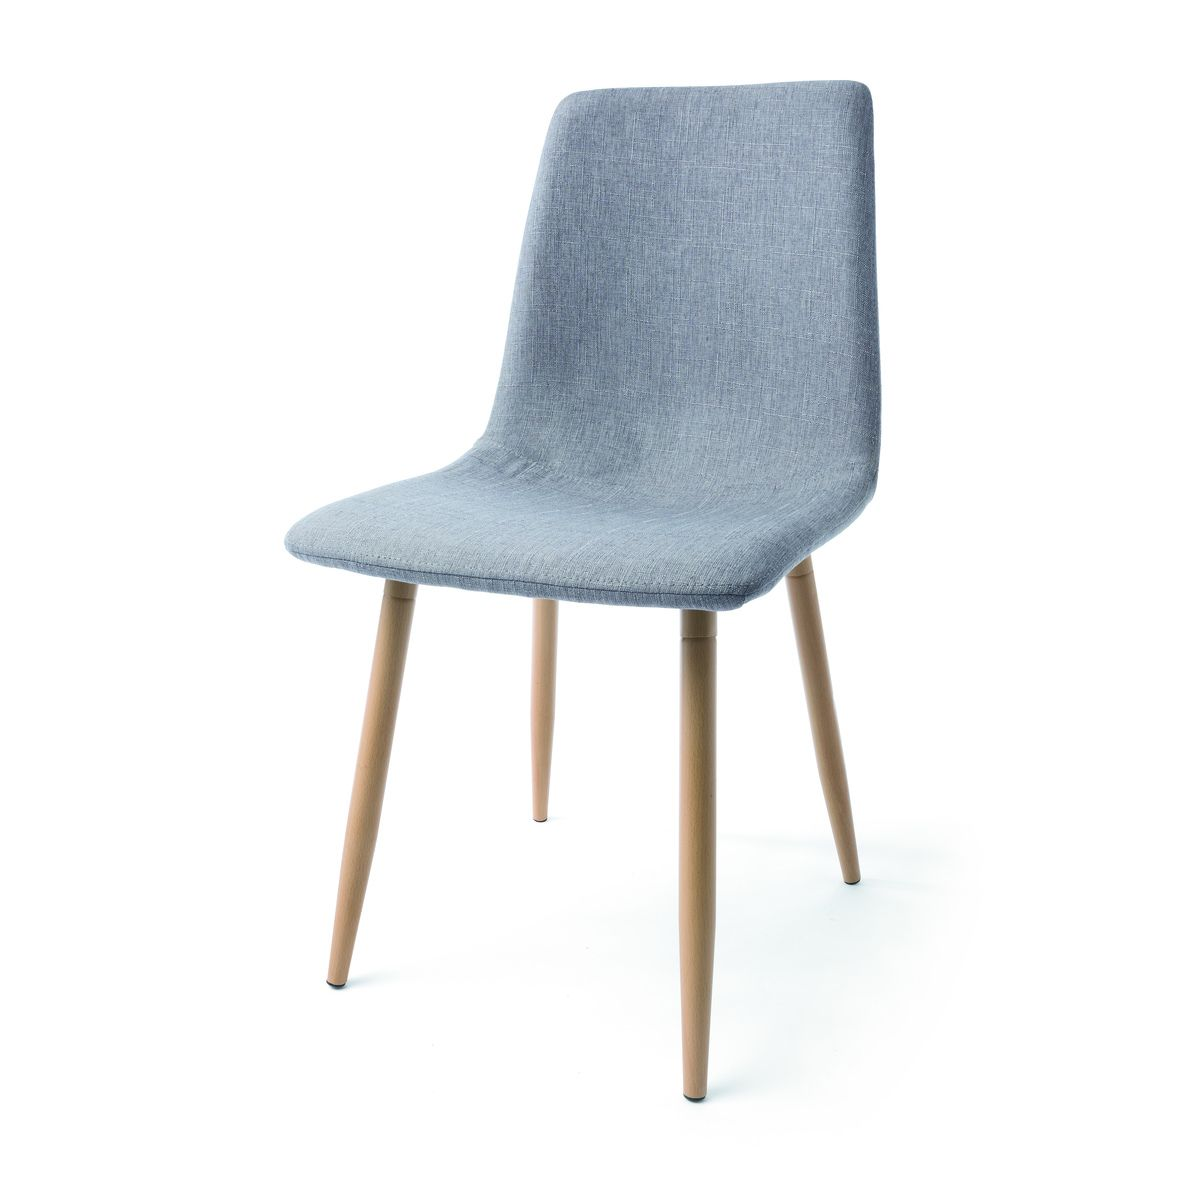 Wood Finish Upholstered Dining Chair  Kmart  Home  Pinterest Glamorous Kmart Kitchen Chairs Review